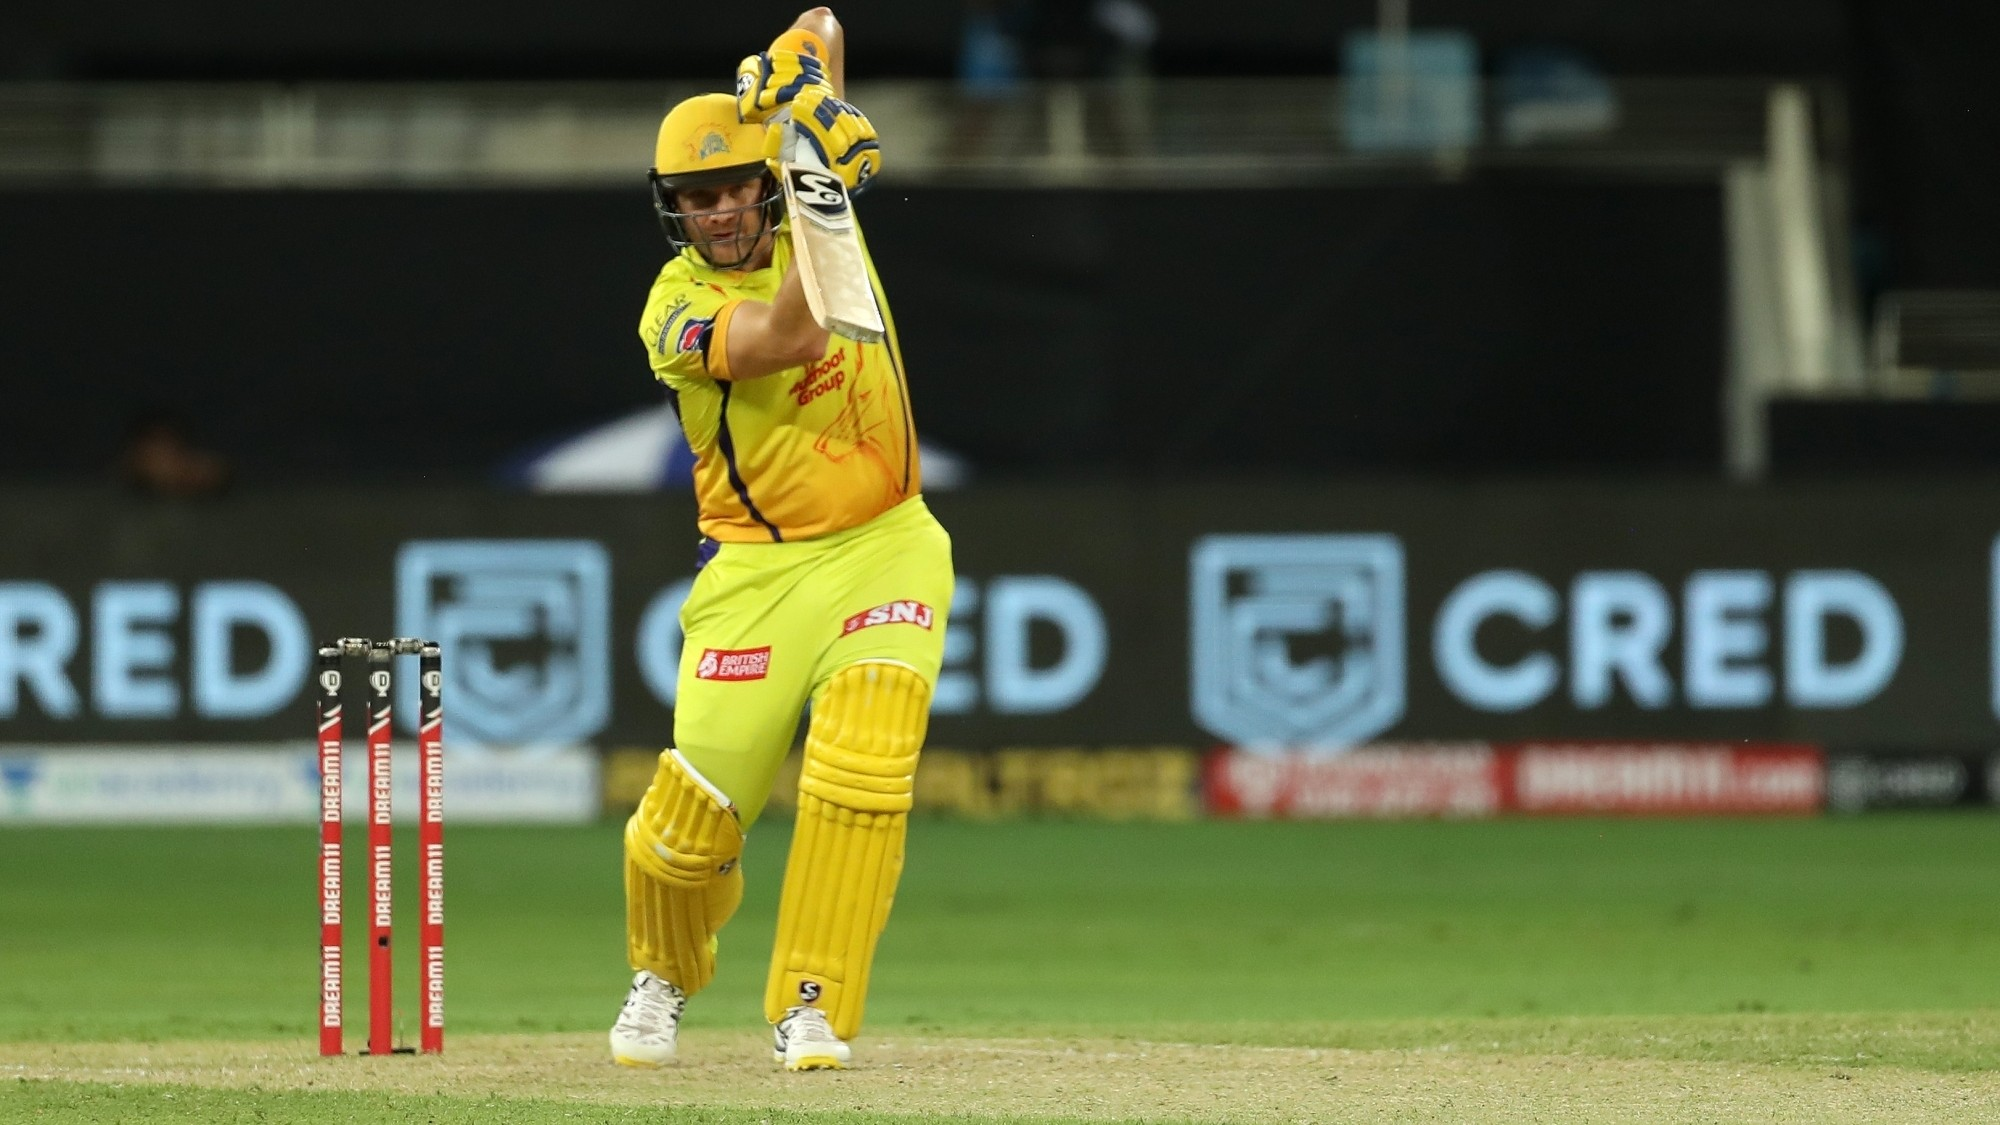 IPL 2020: Watson reveals he played against DC despite his grandmother's death before the match